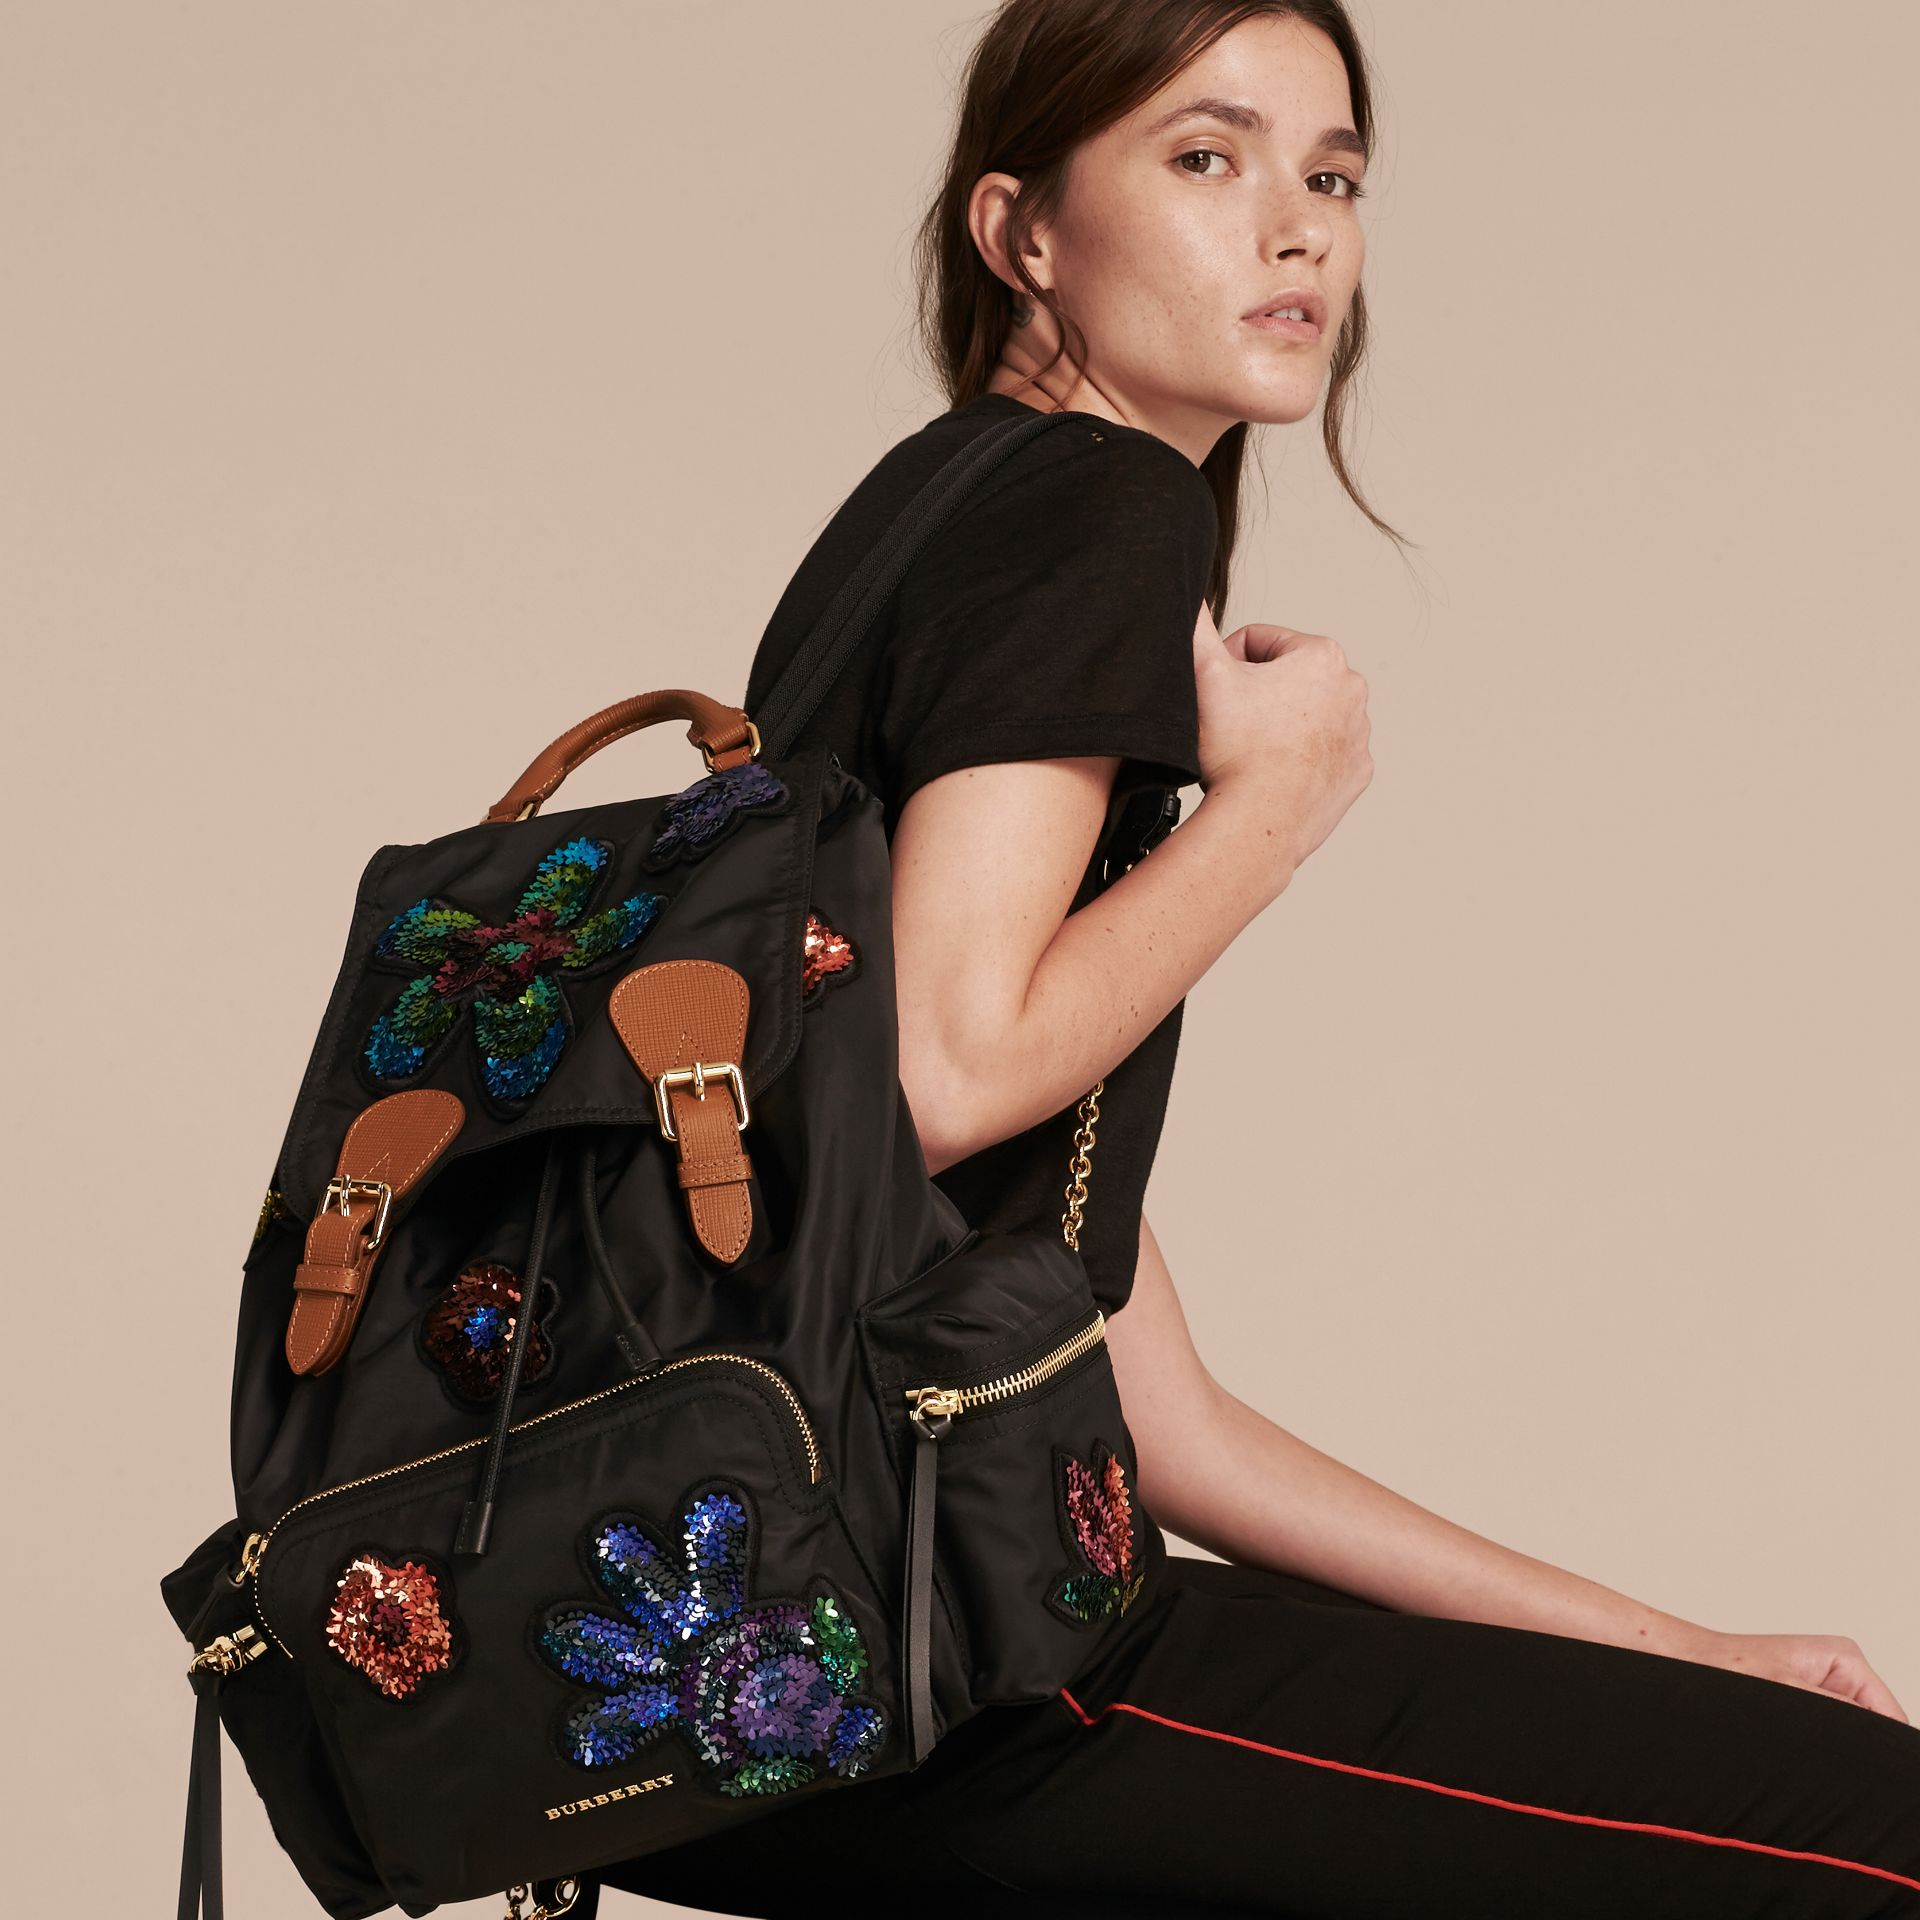 Noir Grand sac The Rucksack en nylon technique avec sequins à motif floral - photo de la galerie 3